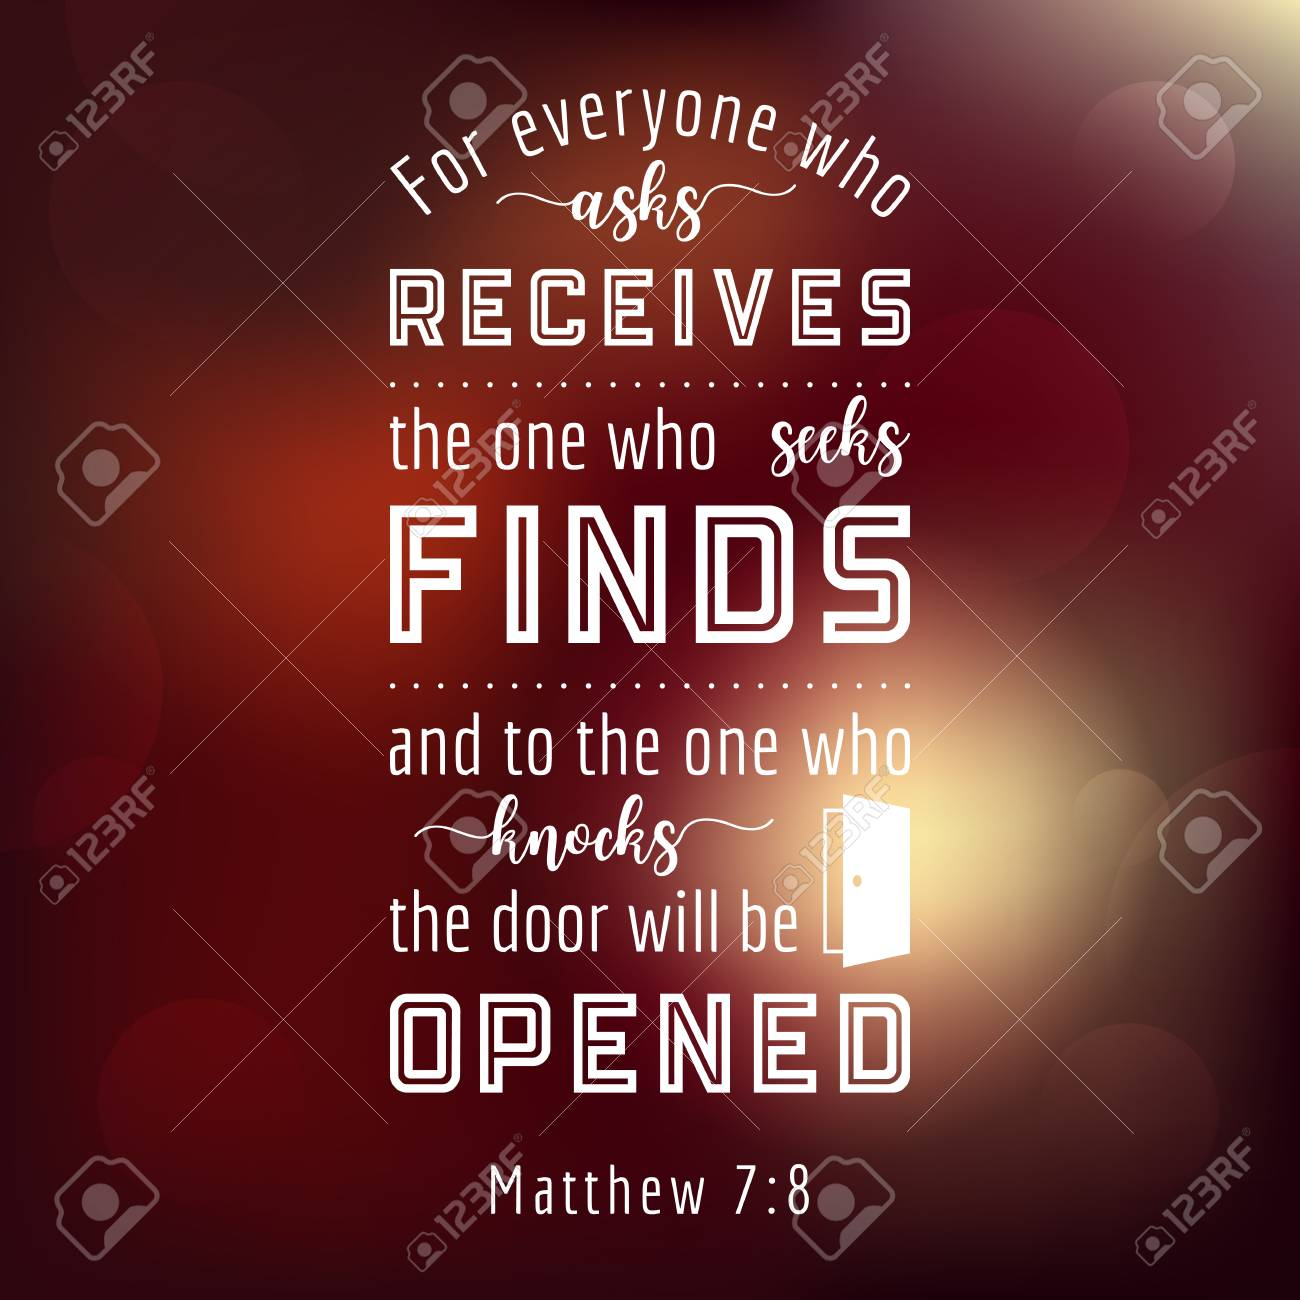 bible quote from Matthew everyone who asks will receives seeks will finds who  sc 1 st  123RF.com & Bible Quote From Matthew Everyone Who Asks Will Receives Seeks ...